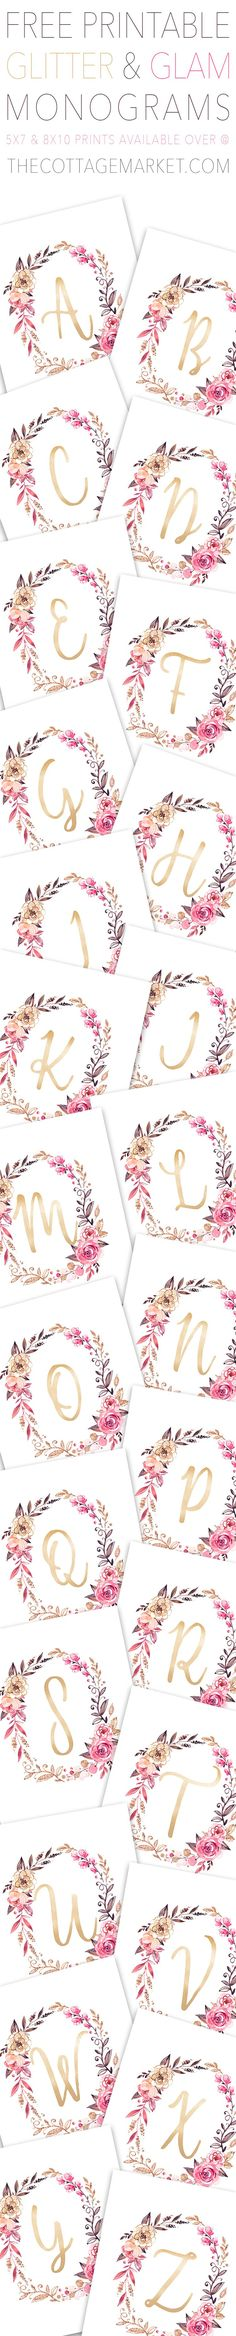 Free Printable Glitter and Glam Monograms from The Cottage Market